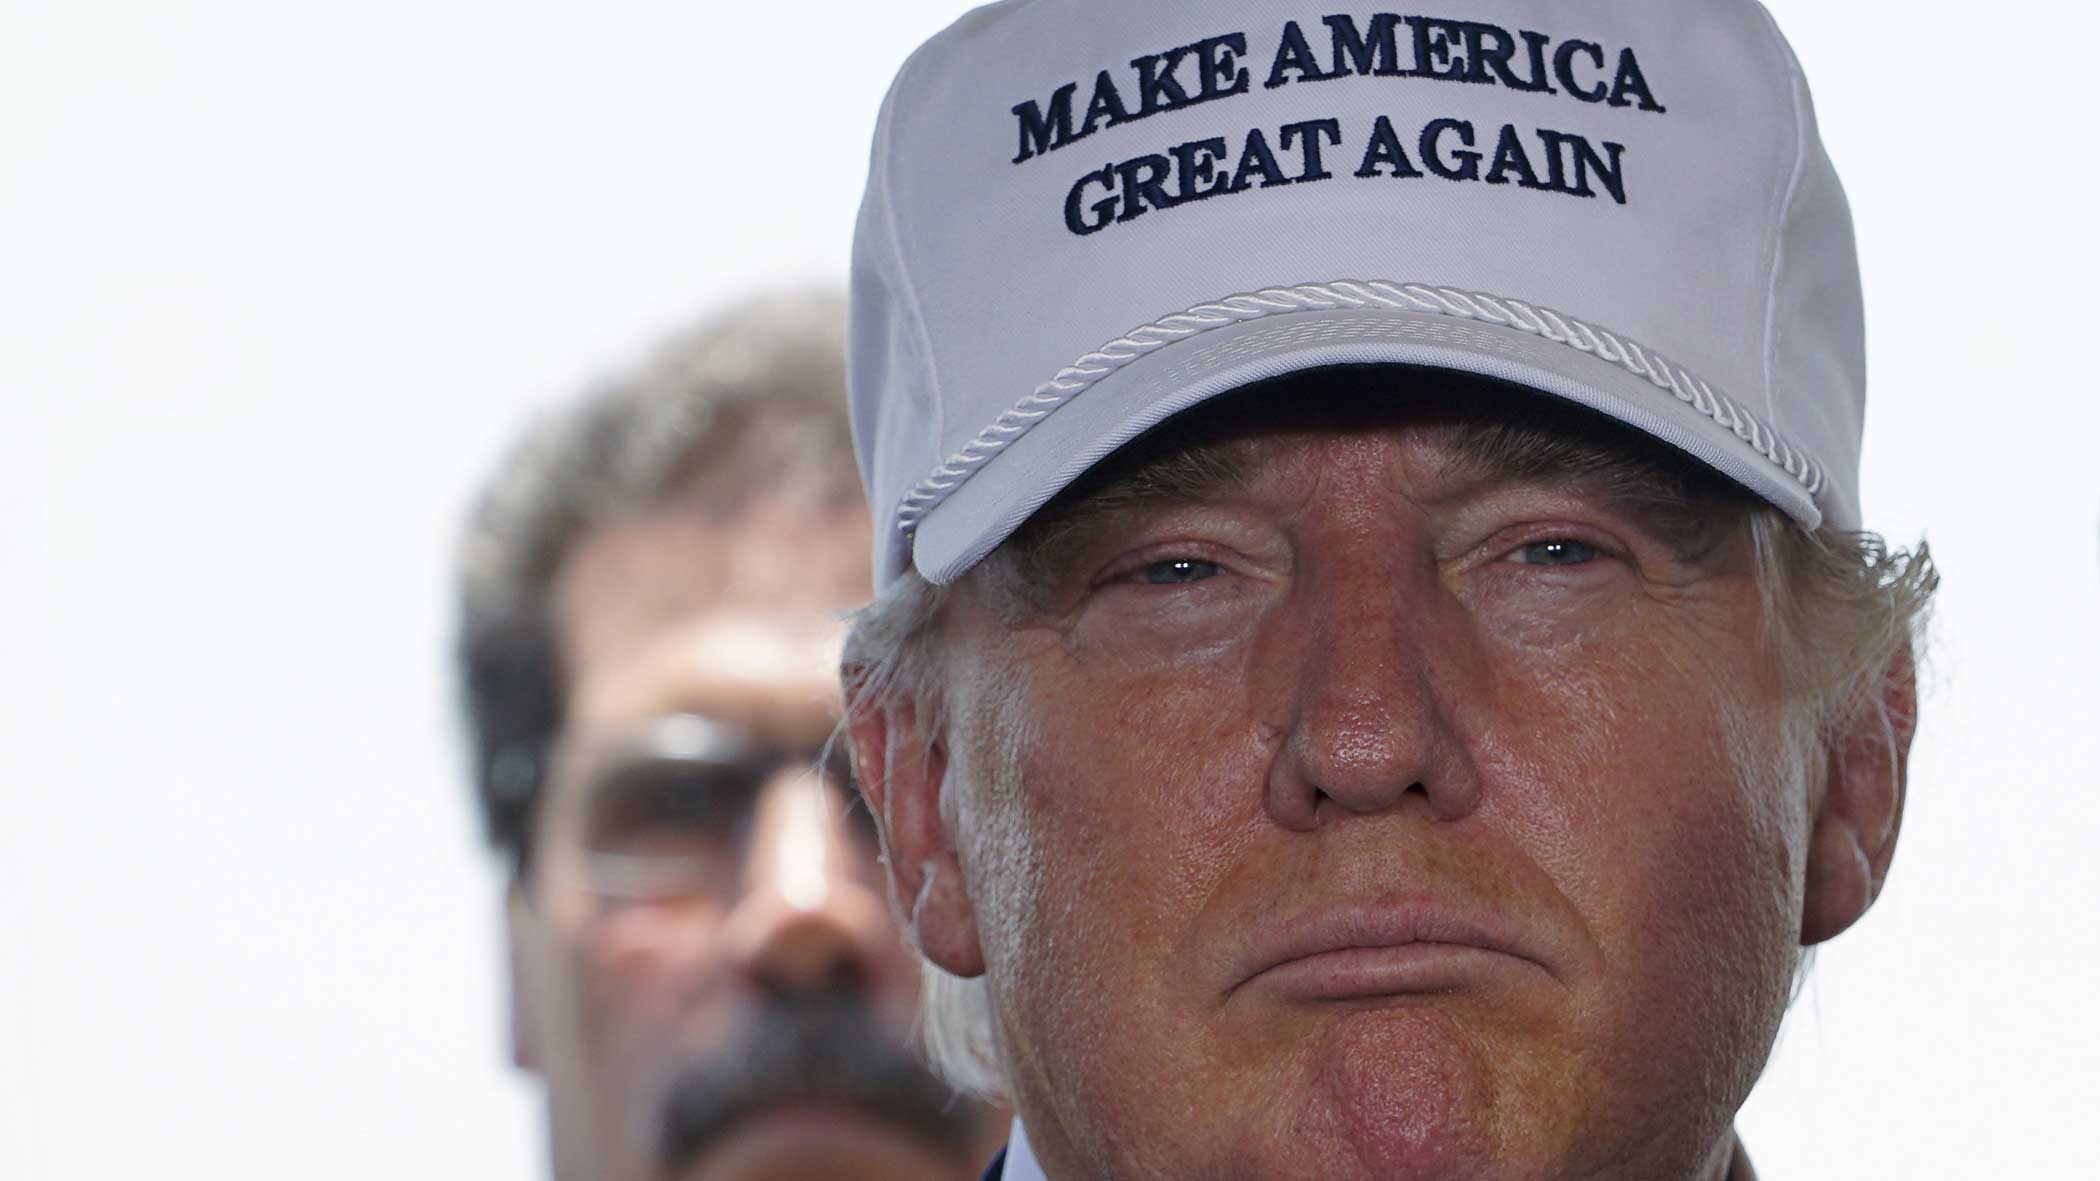 Republican presidential candidate Donald Trump is pictured at a news conference near the U.S.-Mexico border outside of Laredo, Texas on July 23, 2015.